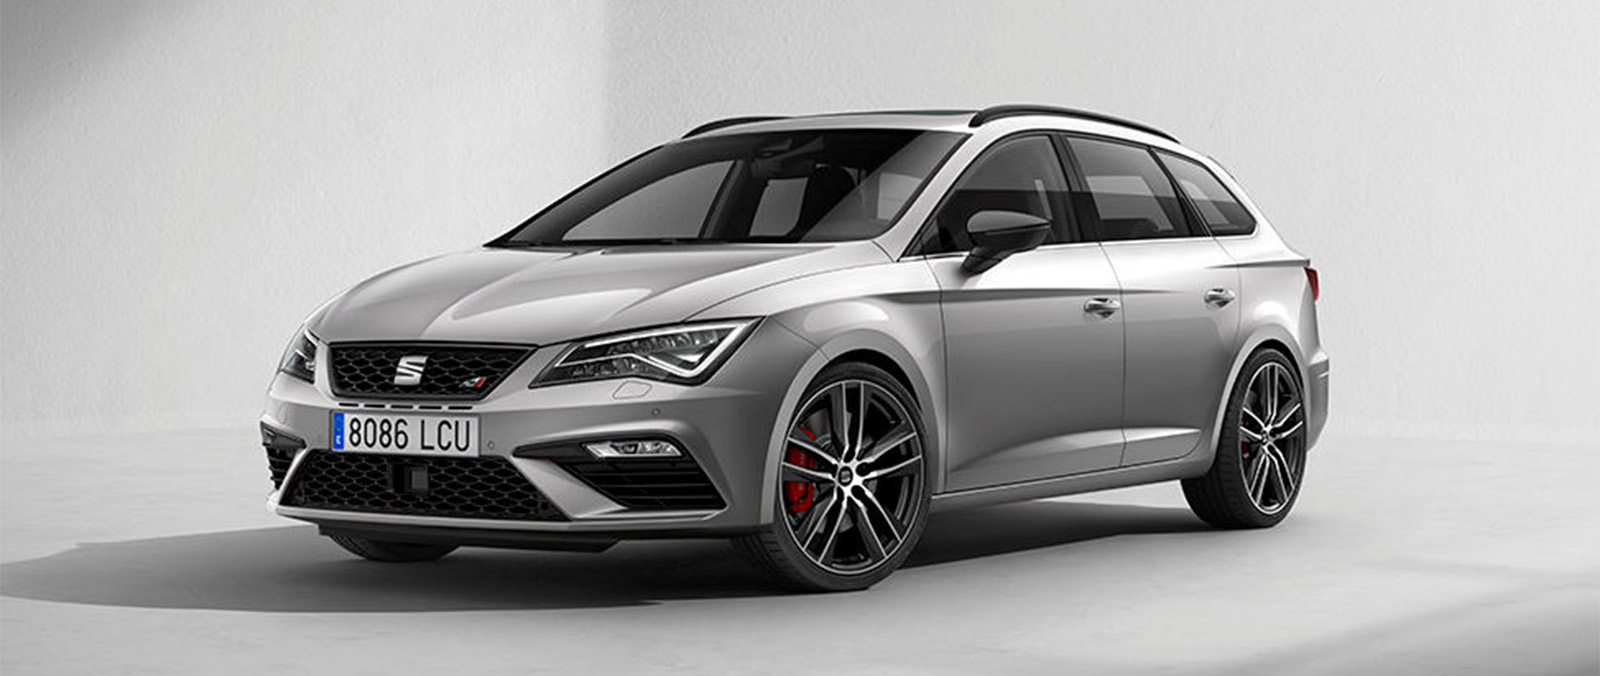 SEAT Leon CUPRA Black is hot